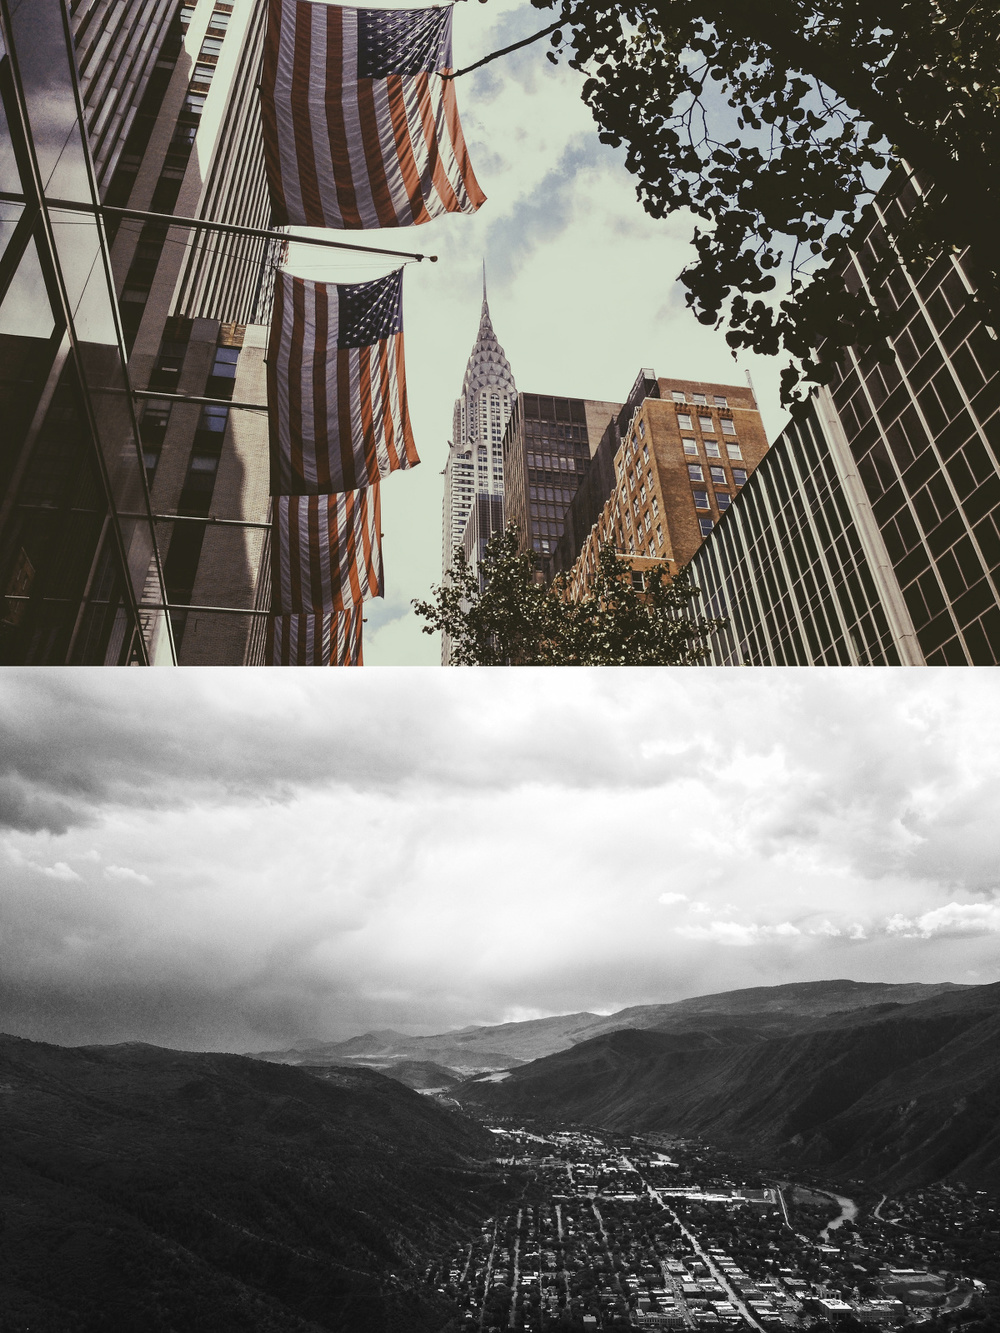 New York City, NY -- Glenwood Springs, CO